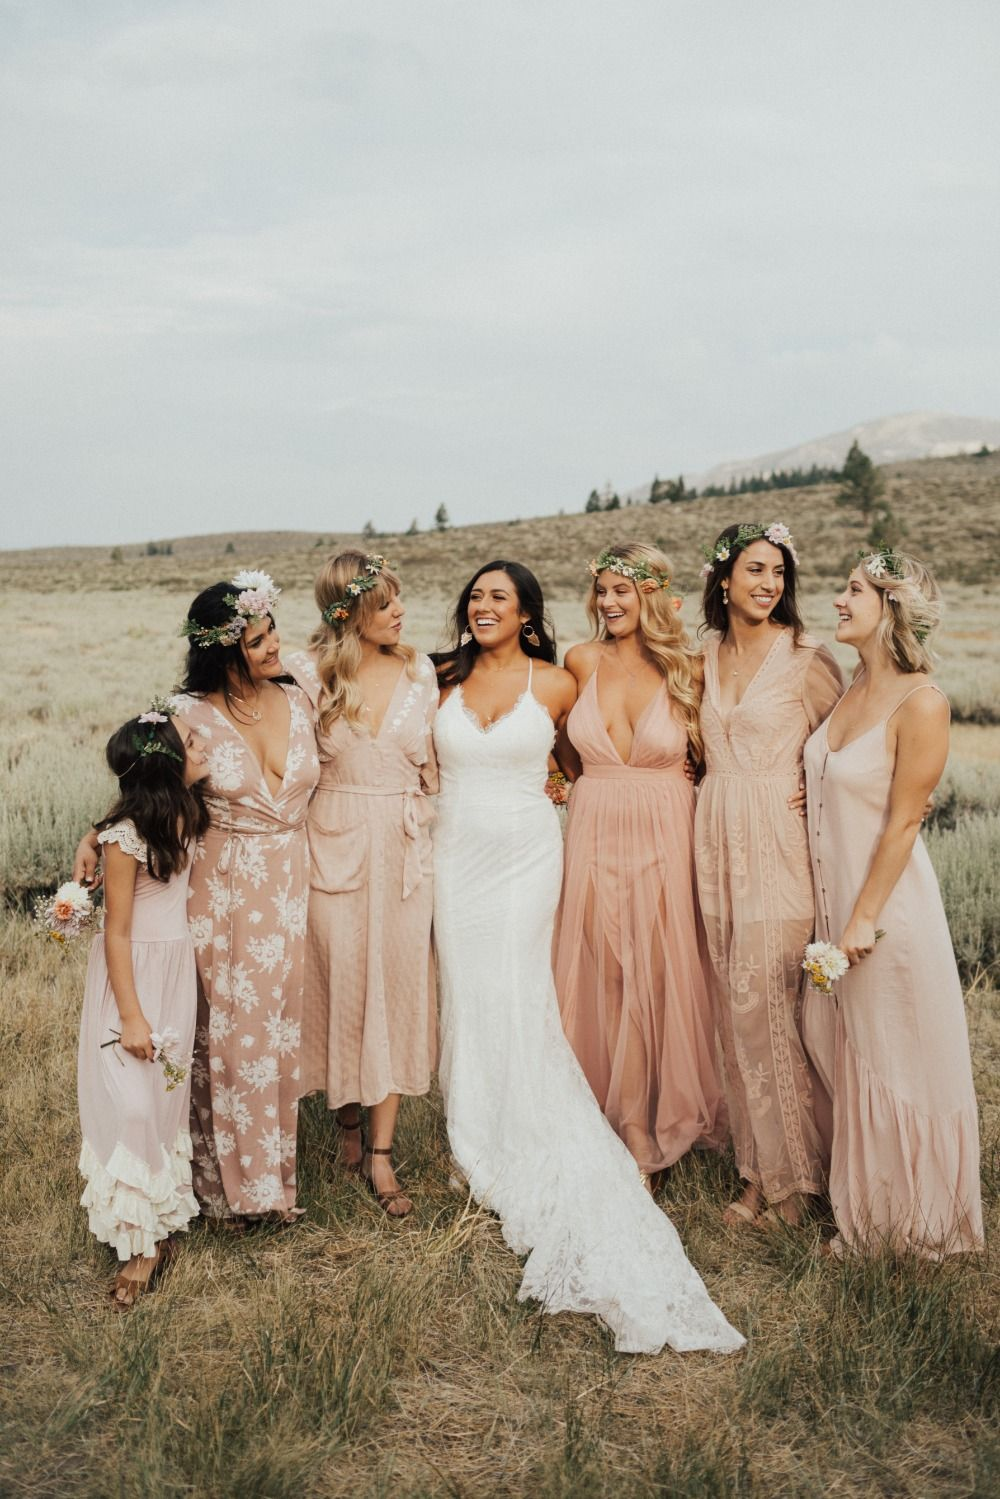 Organic Laid-back Wedding with Lots of DIY Inspiration